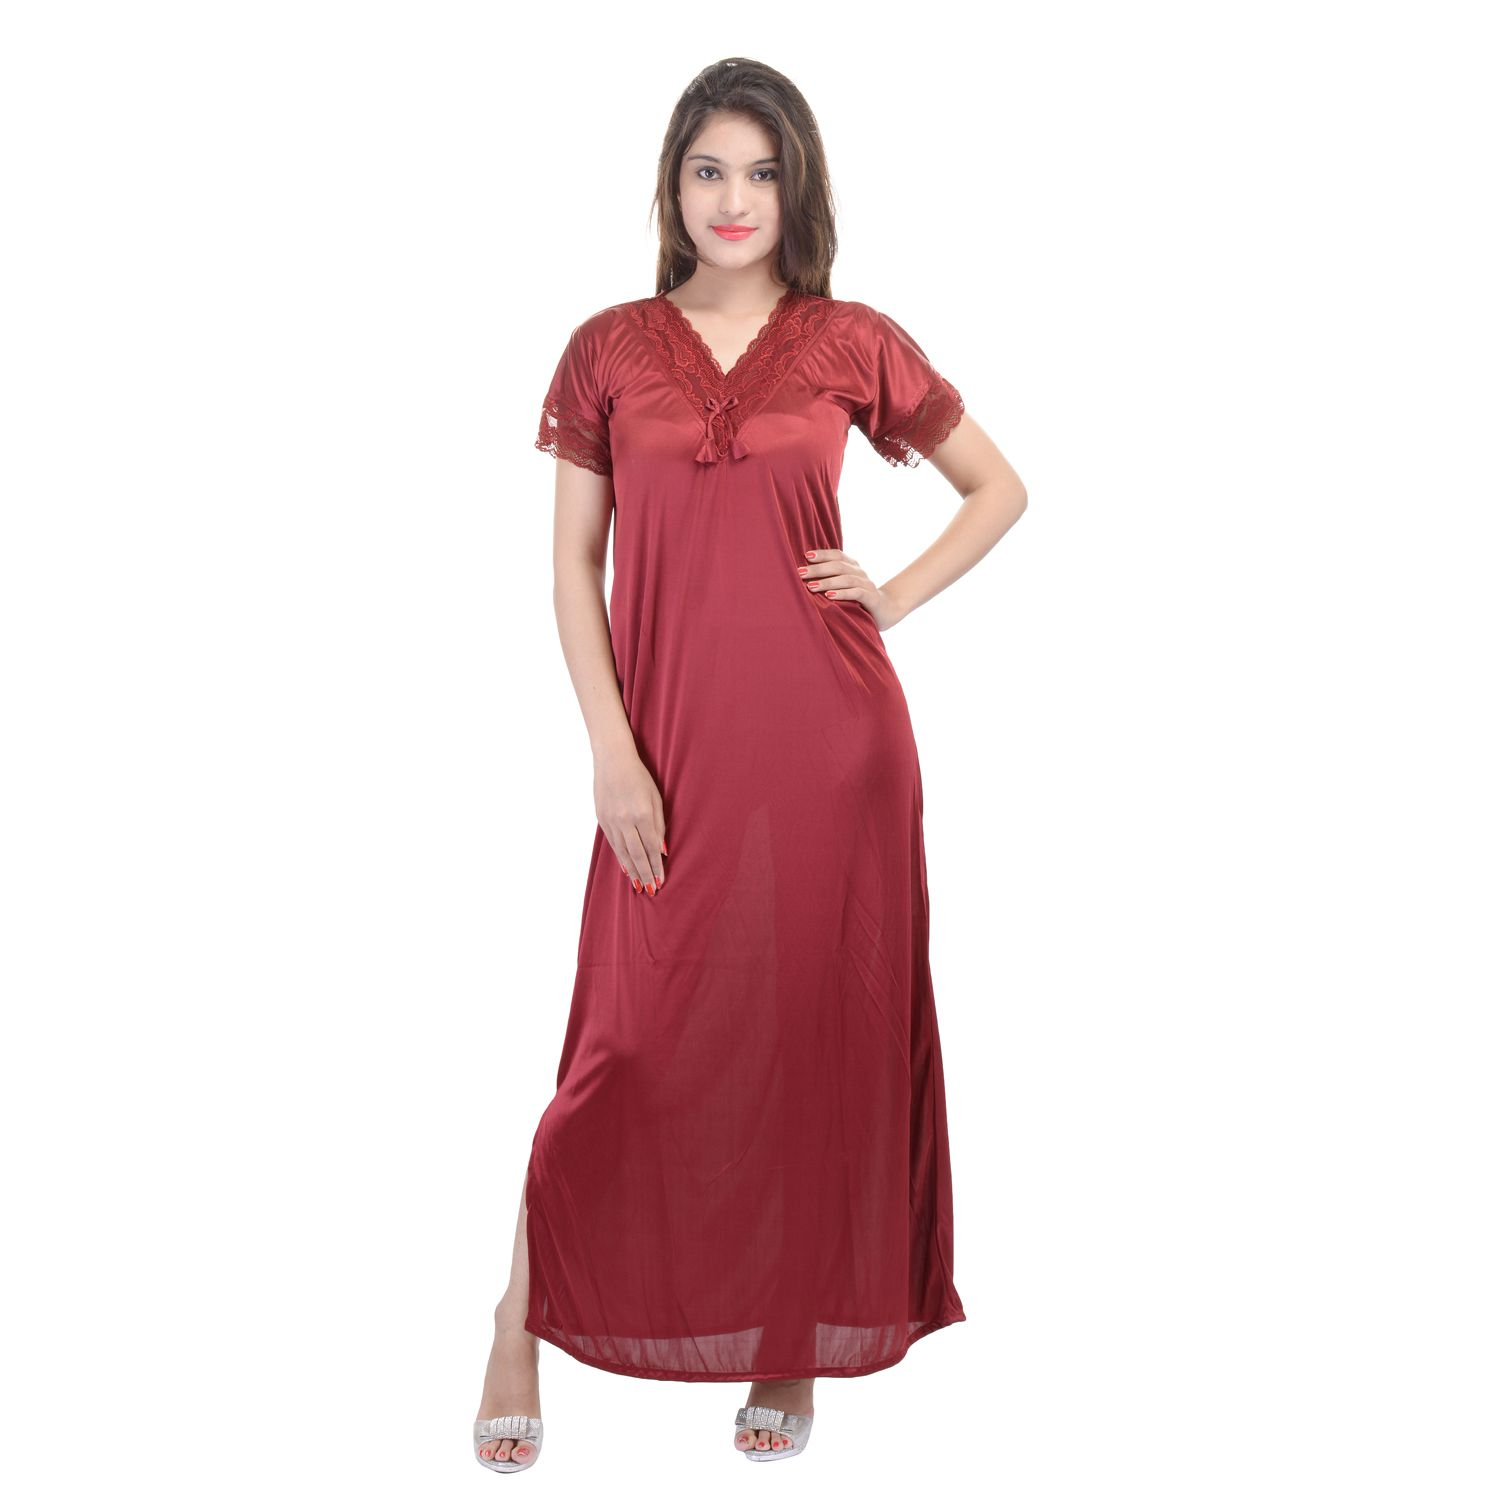 Buy Rajasthani Sarees Maroon Satin Nighty   Night Gowns Online at Best  Prices in India - Snapdeal 1418e93cc